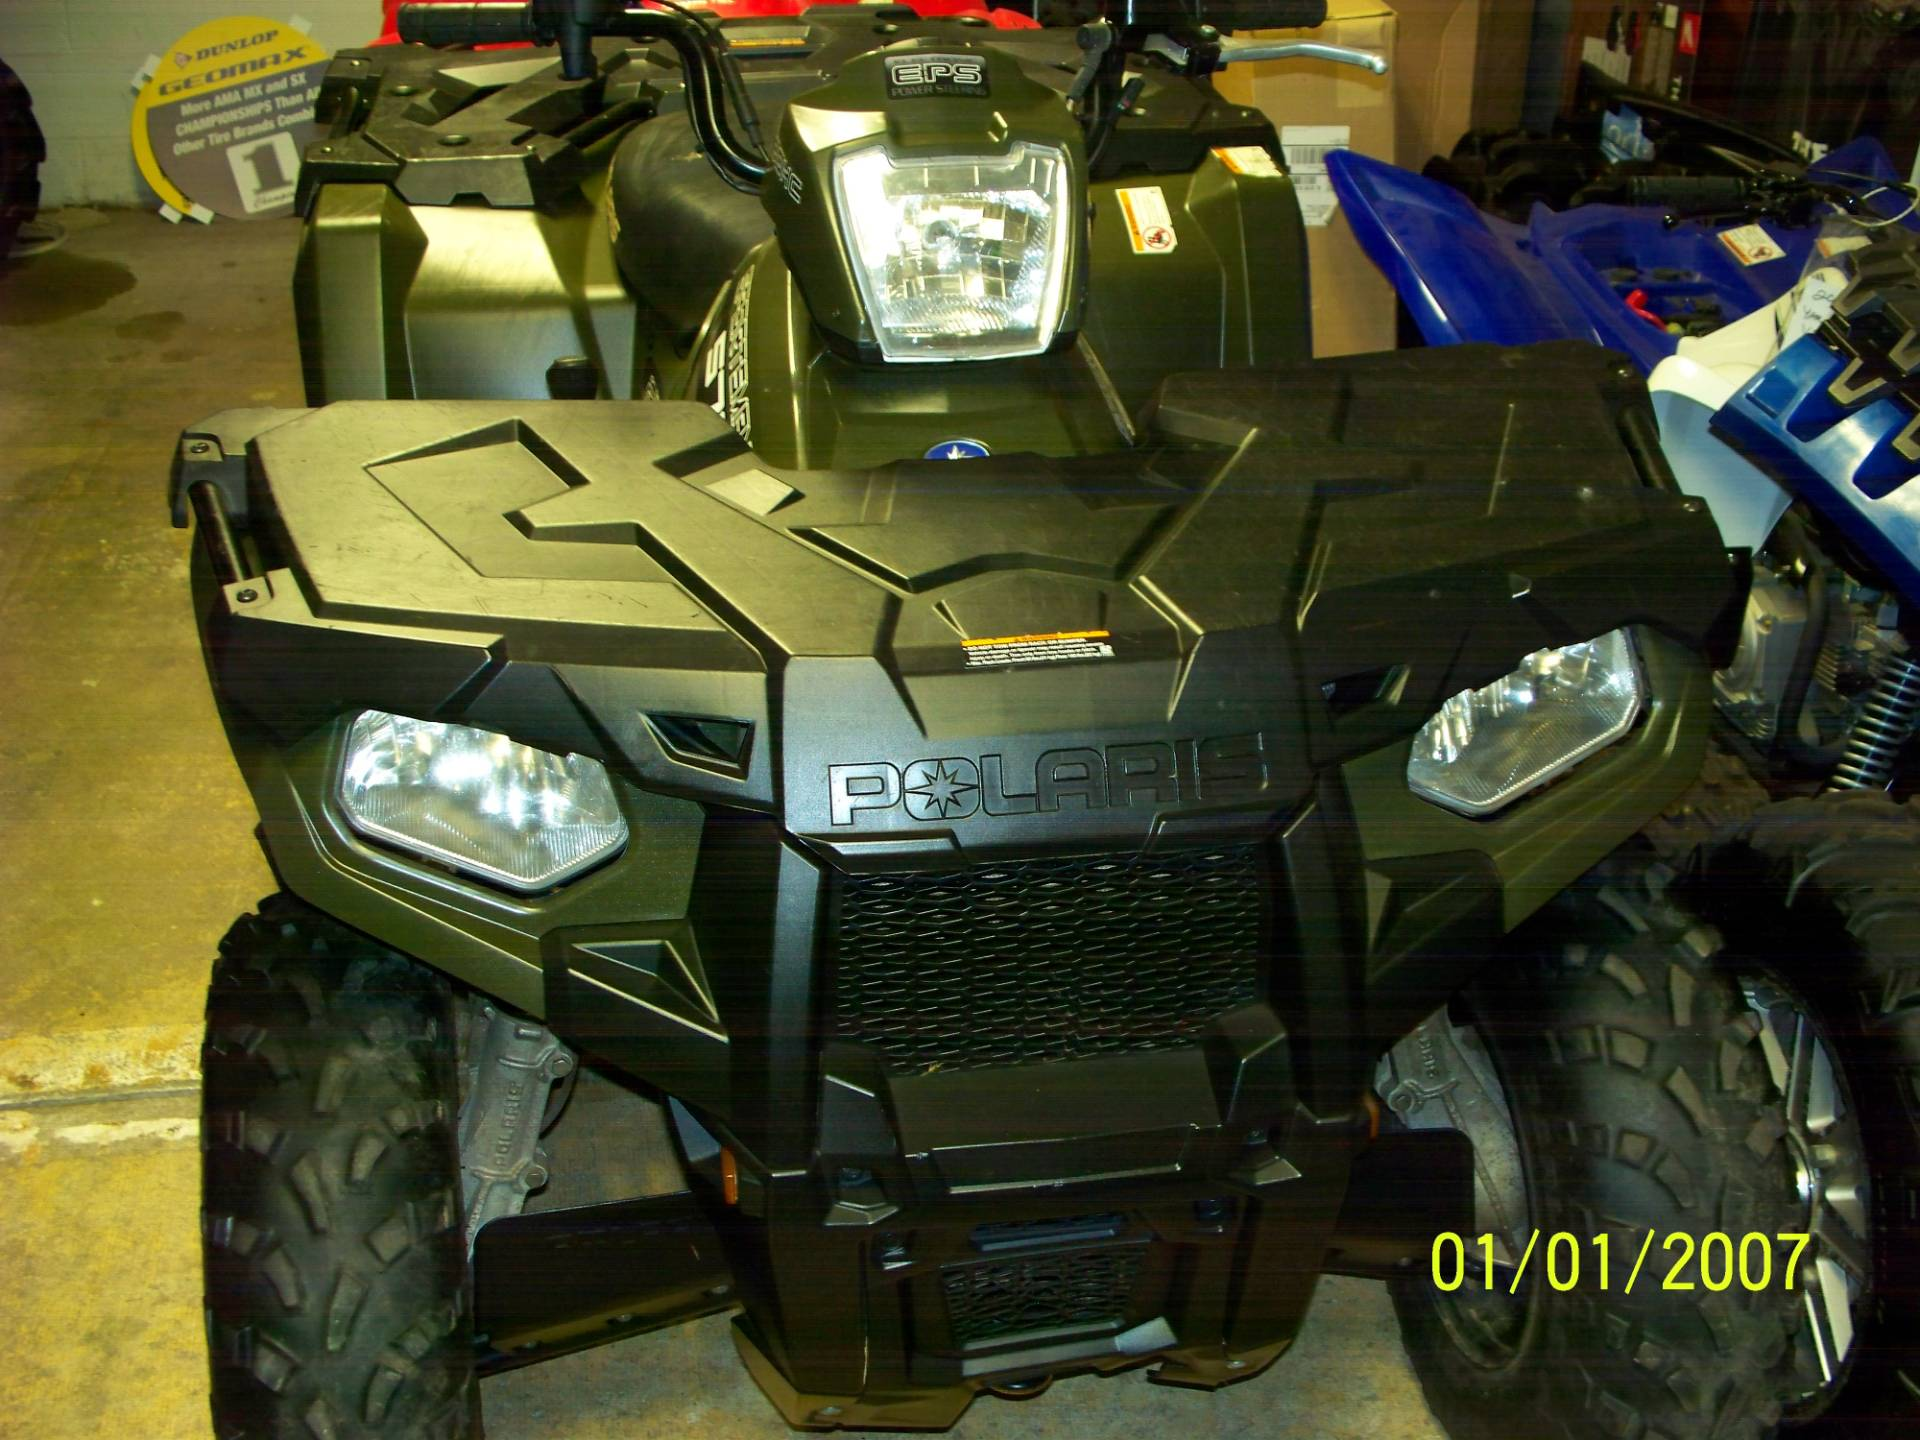 2015 Polaris Sportsman 570 in Sterling, Illinois - Photo 1